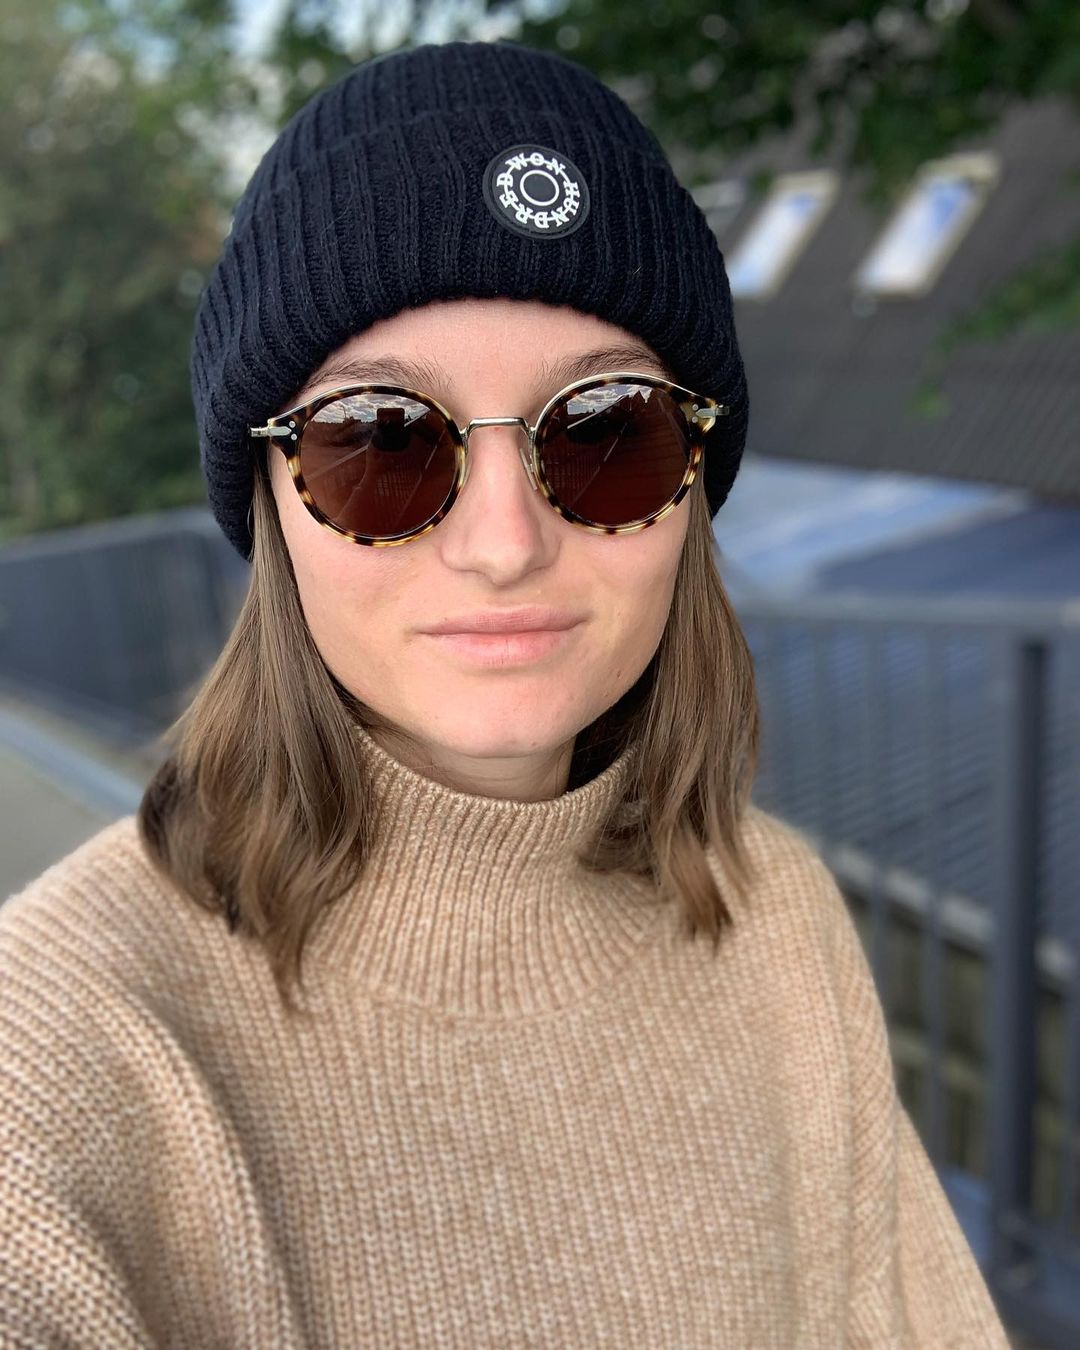 Selfie image with sunglasses and a hat